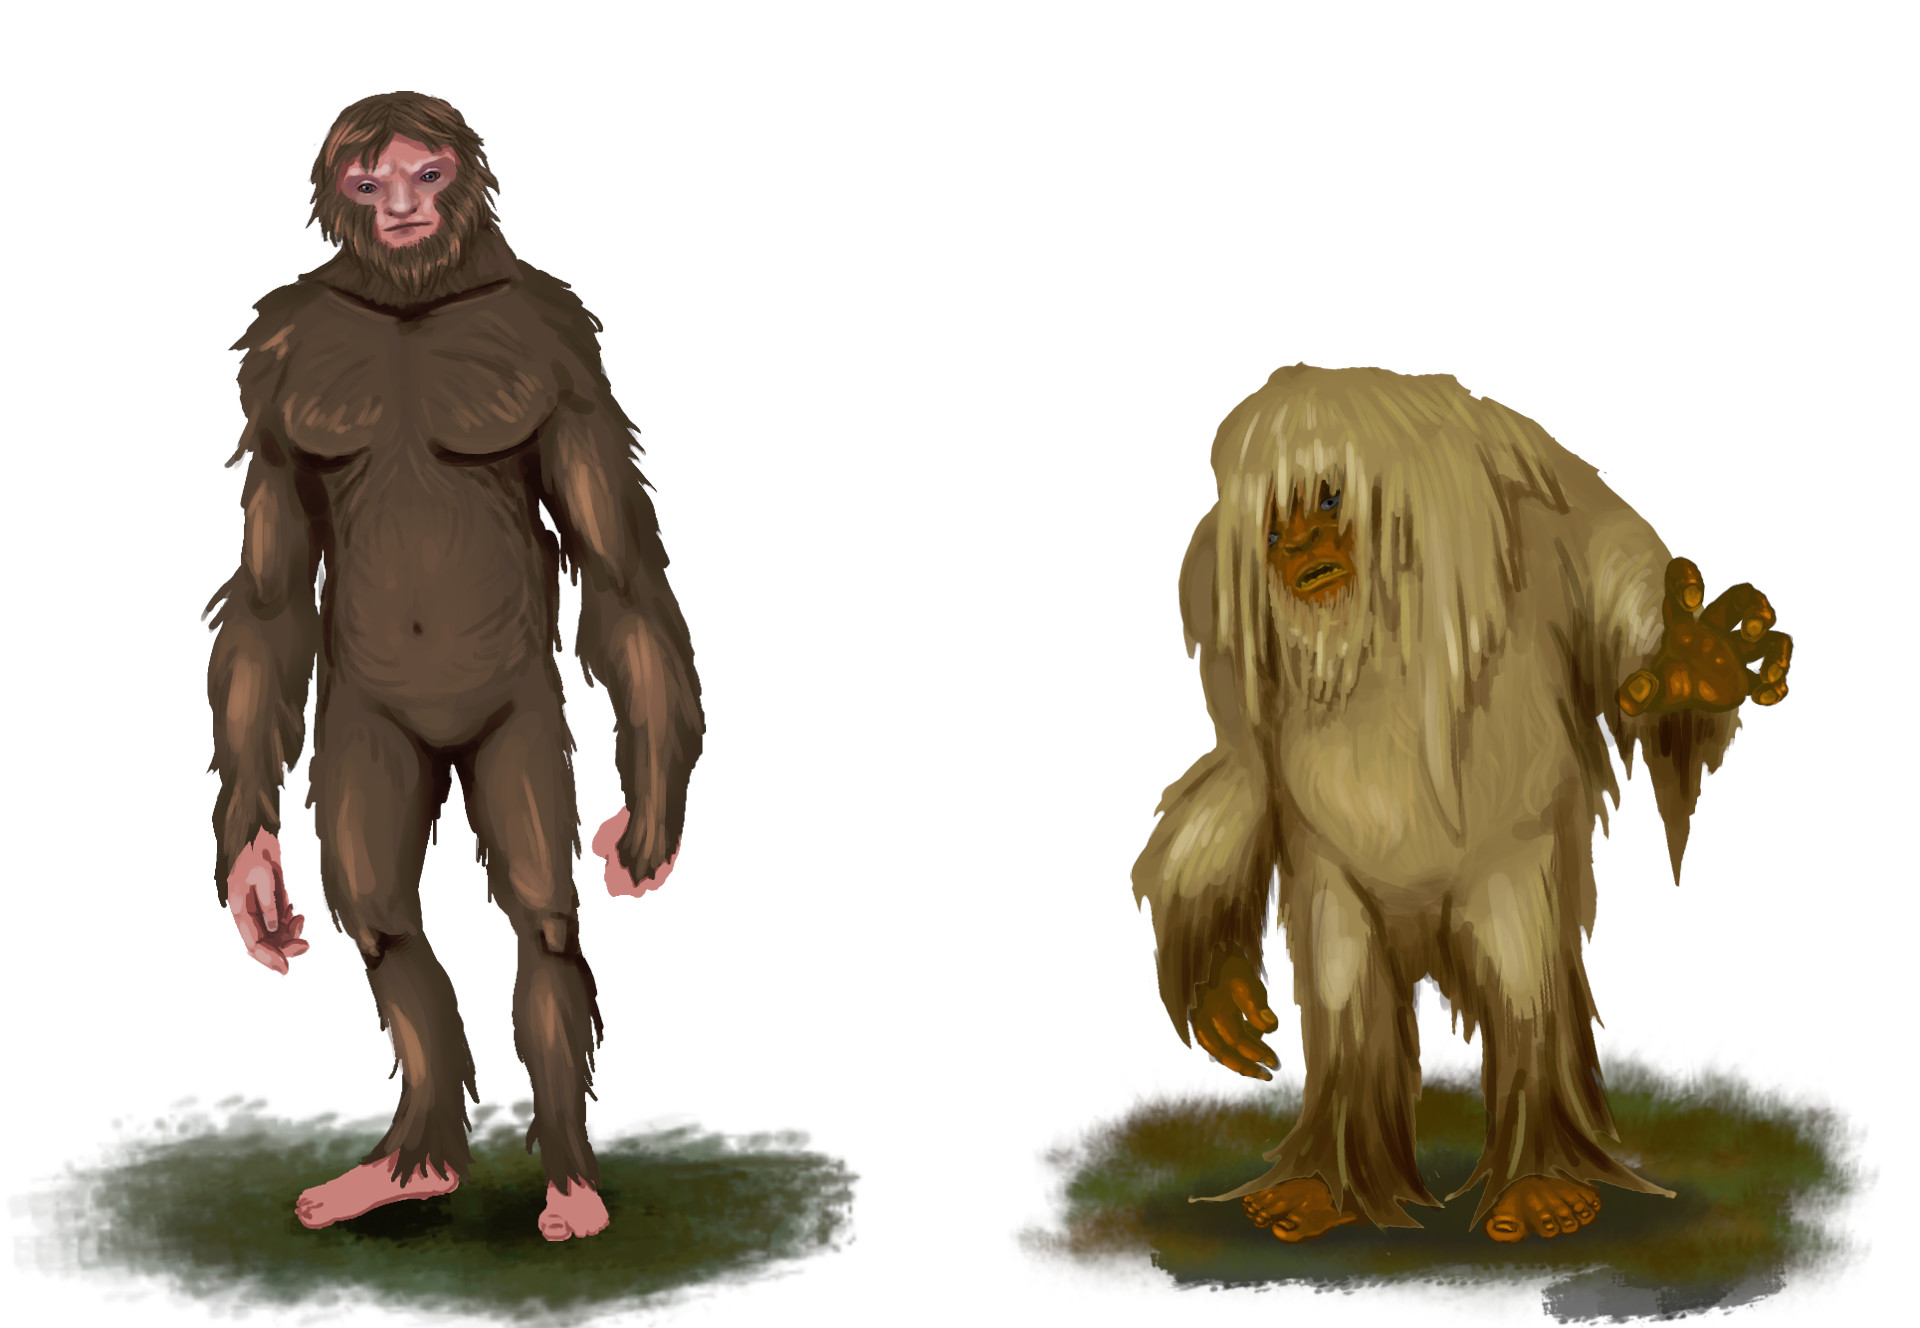 Sasquatch and Skunk Ape